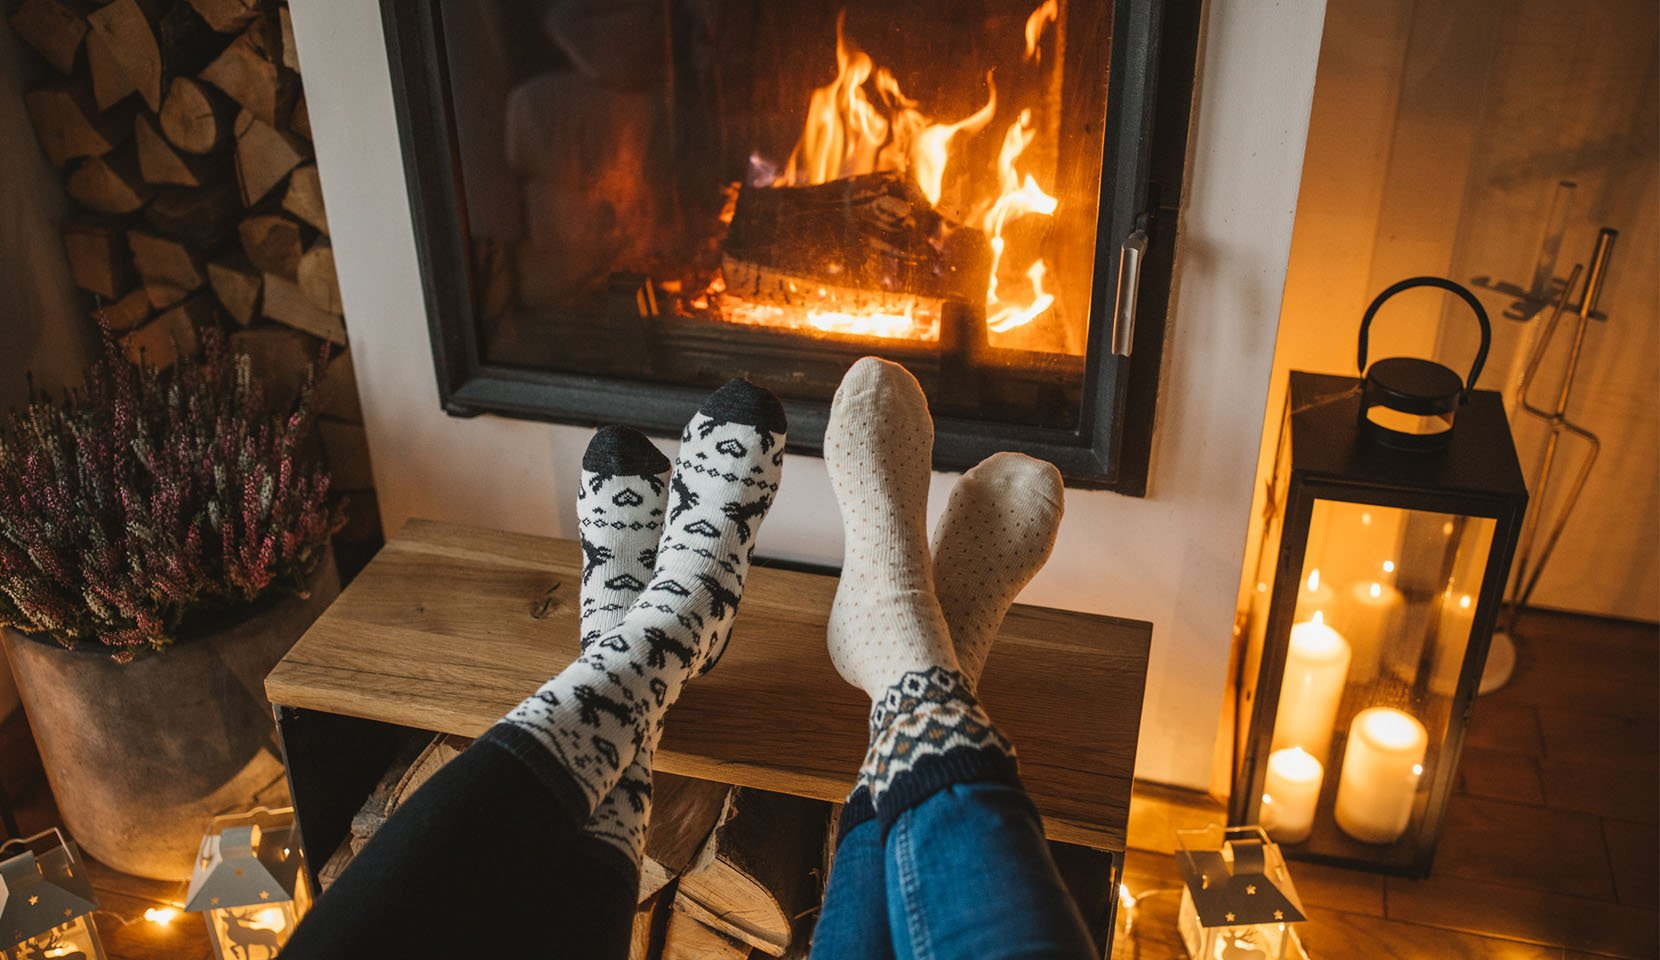 A couple warms their feet by the fireplace